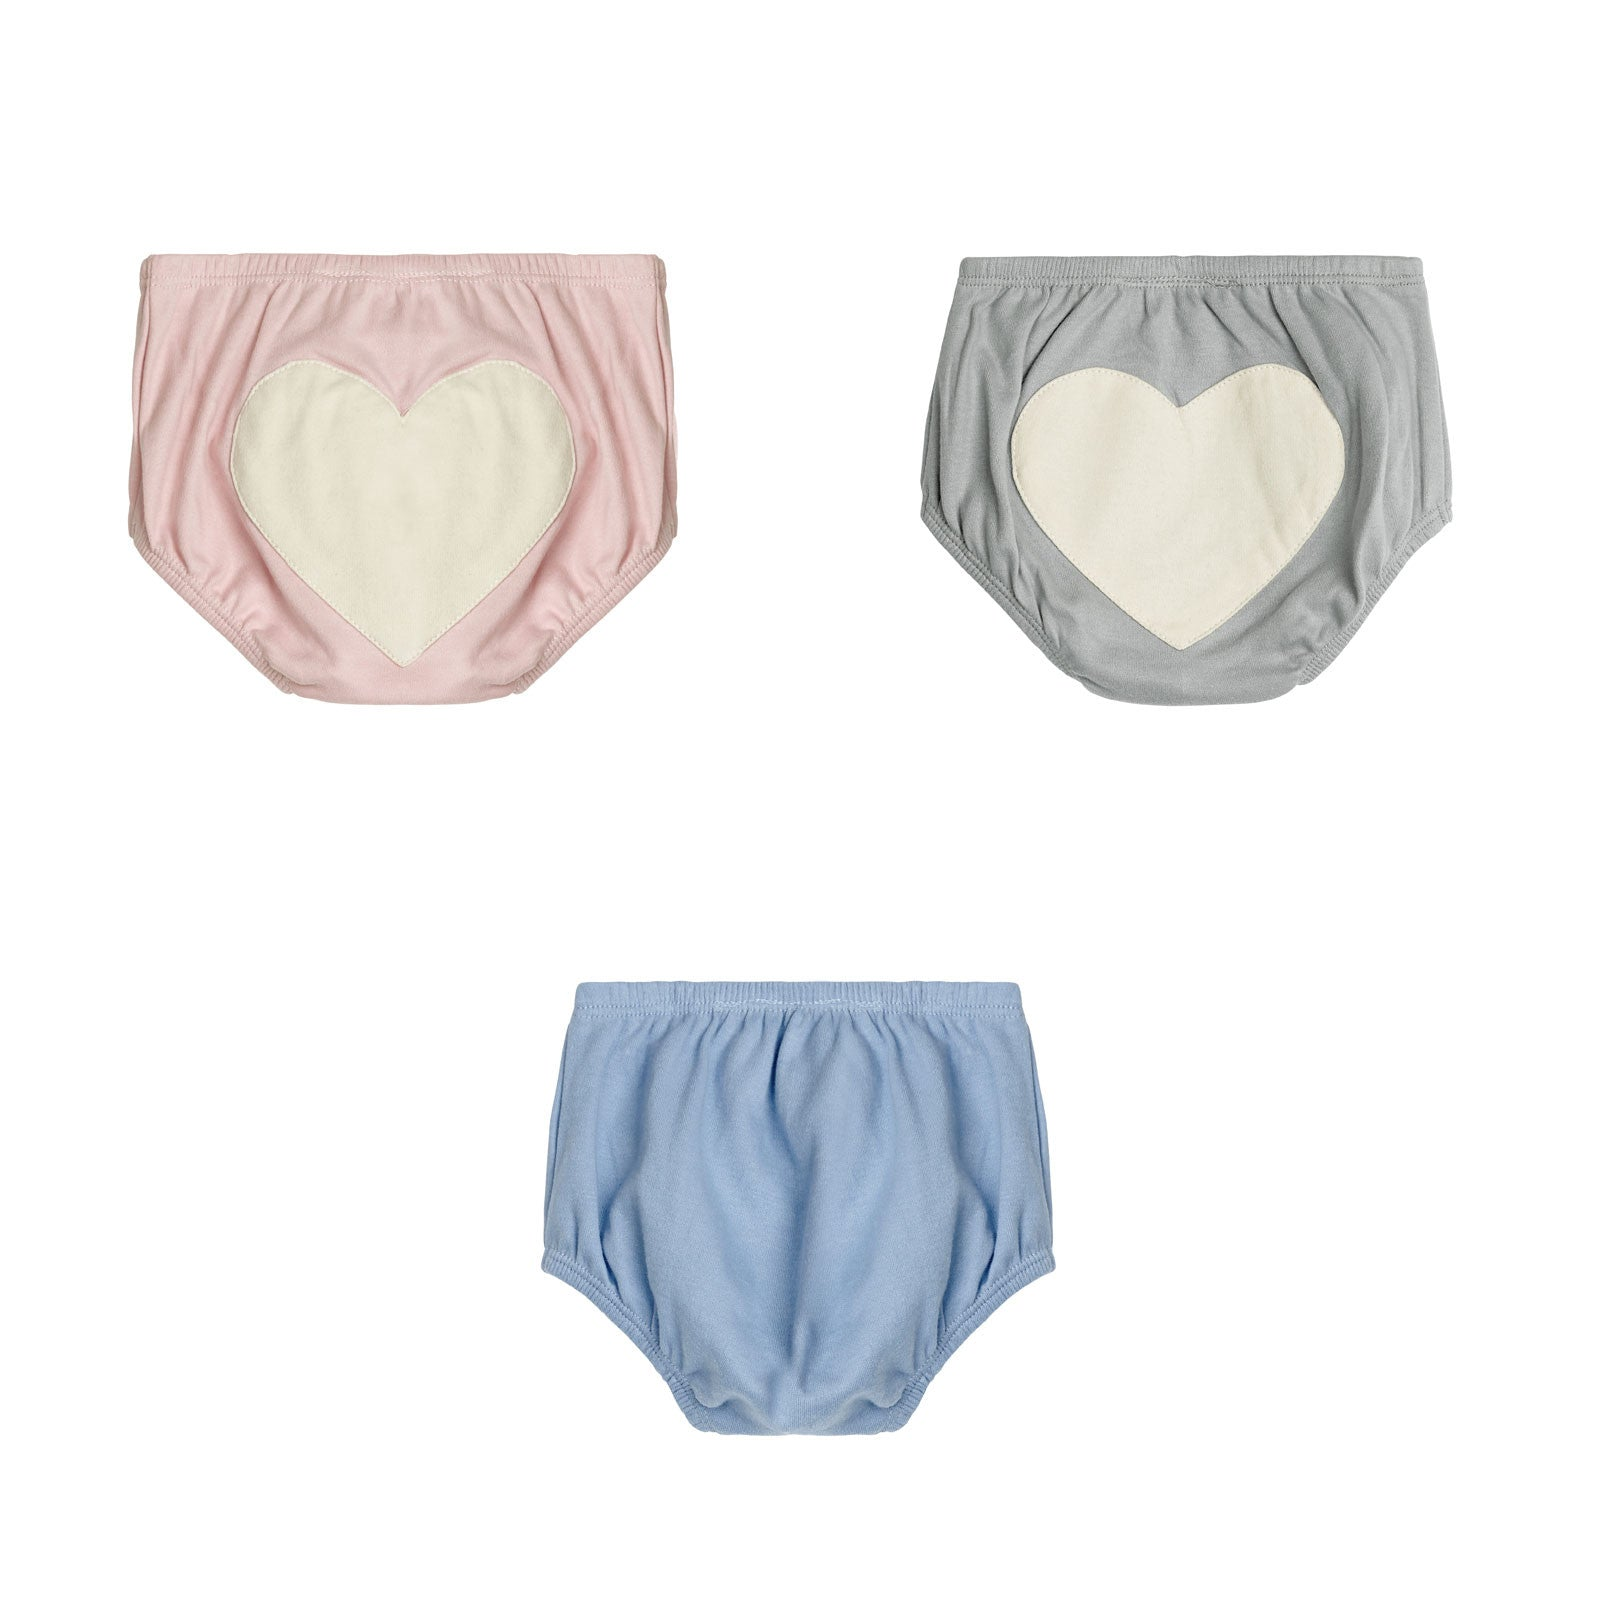 Sapling Child Essentials Heart Bloomers   - Sapling Child - Little Earth Nest - 1